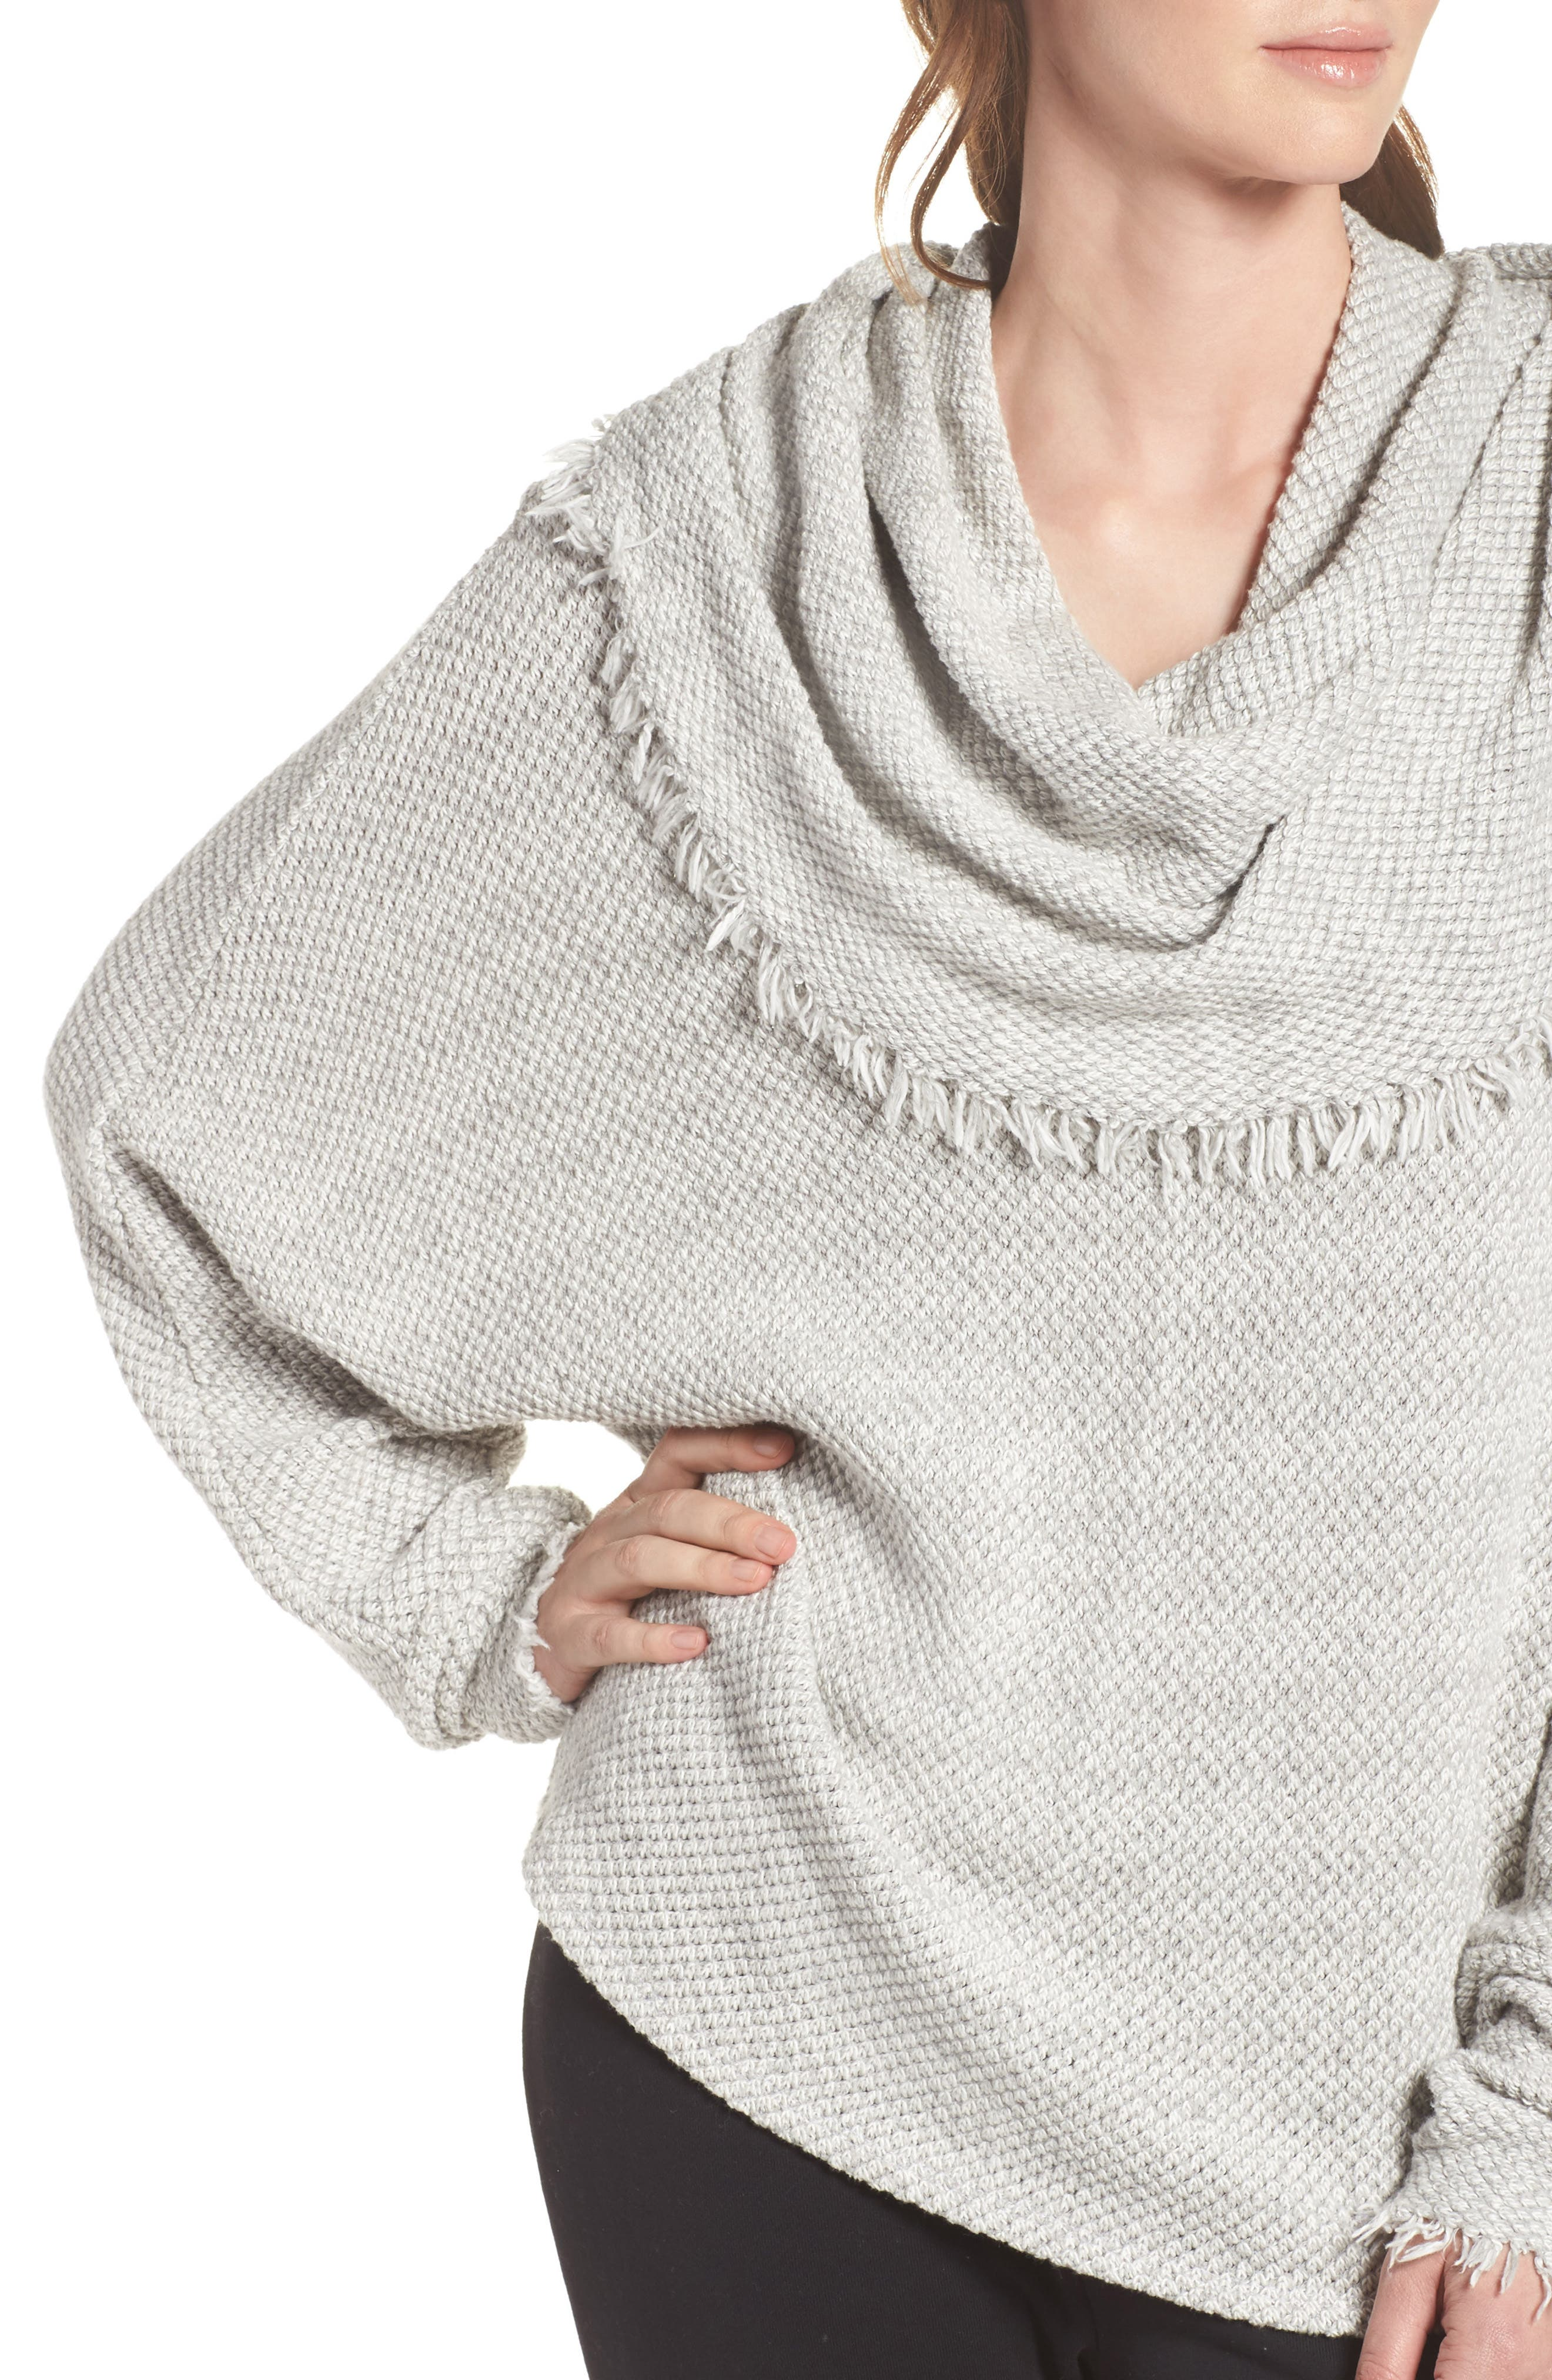 Oversize Turtleneck Sweater,                             Alternate thumbnail 4, color,                             035